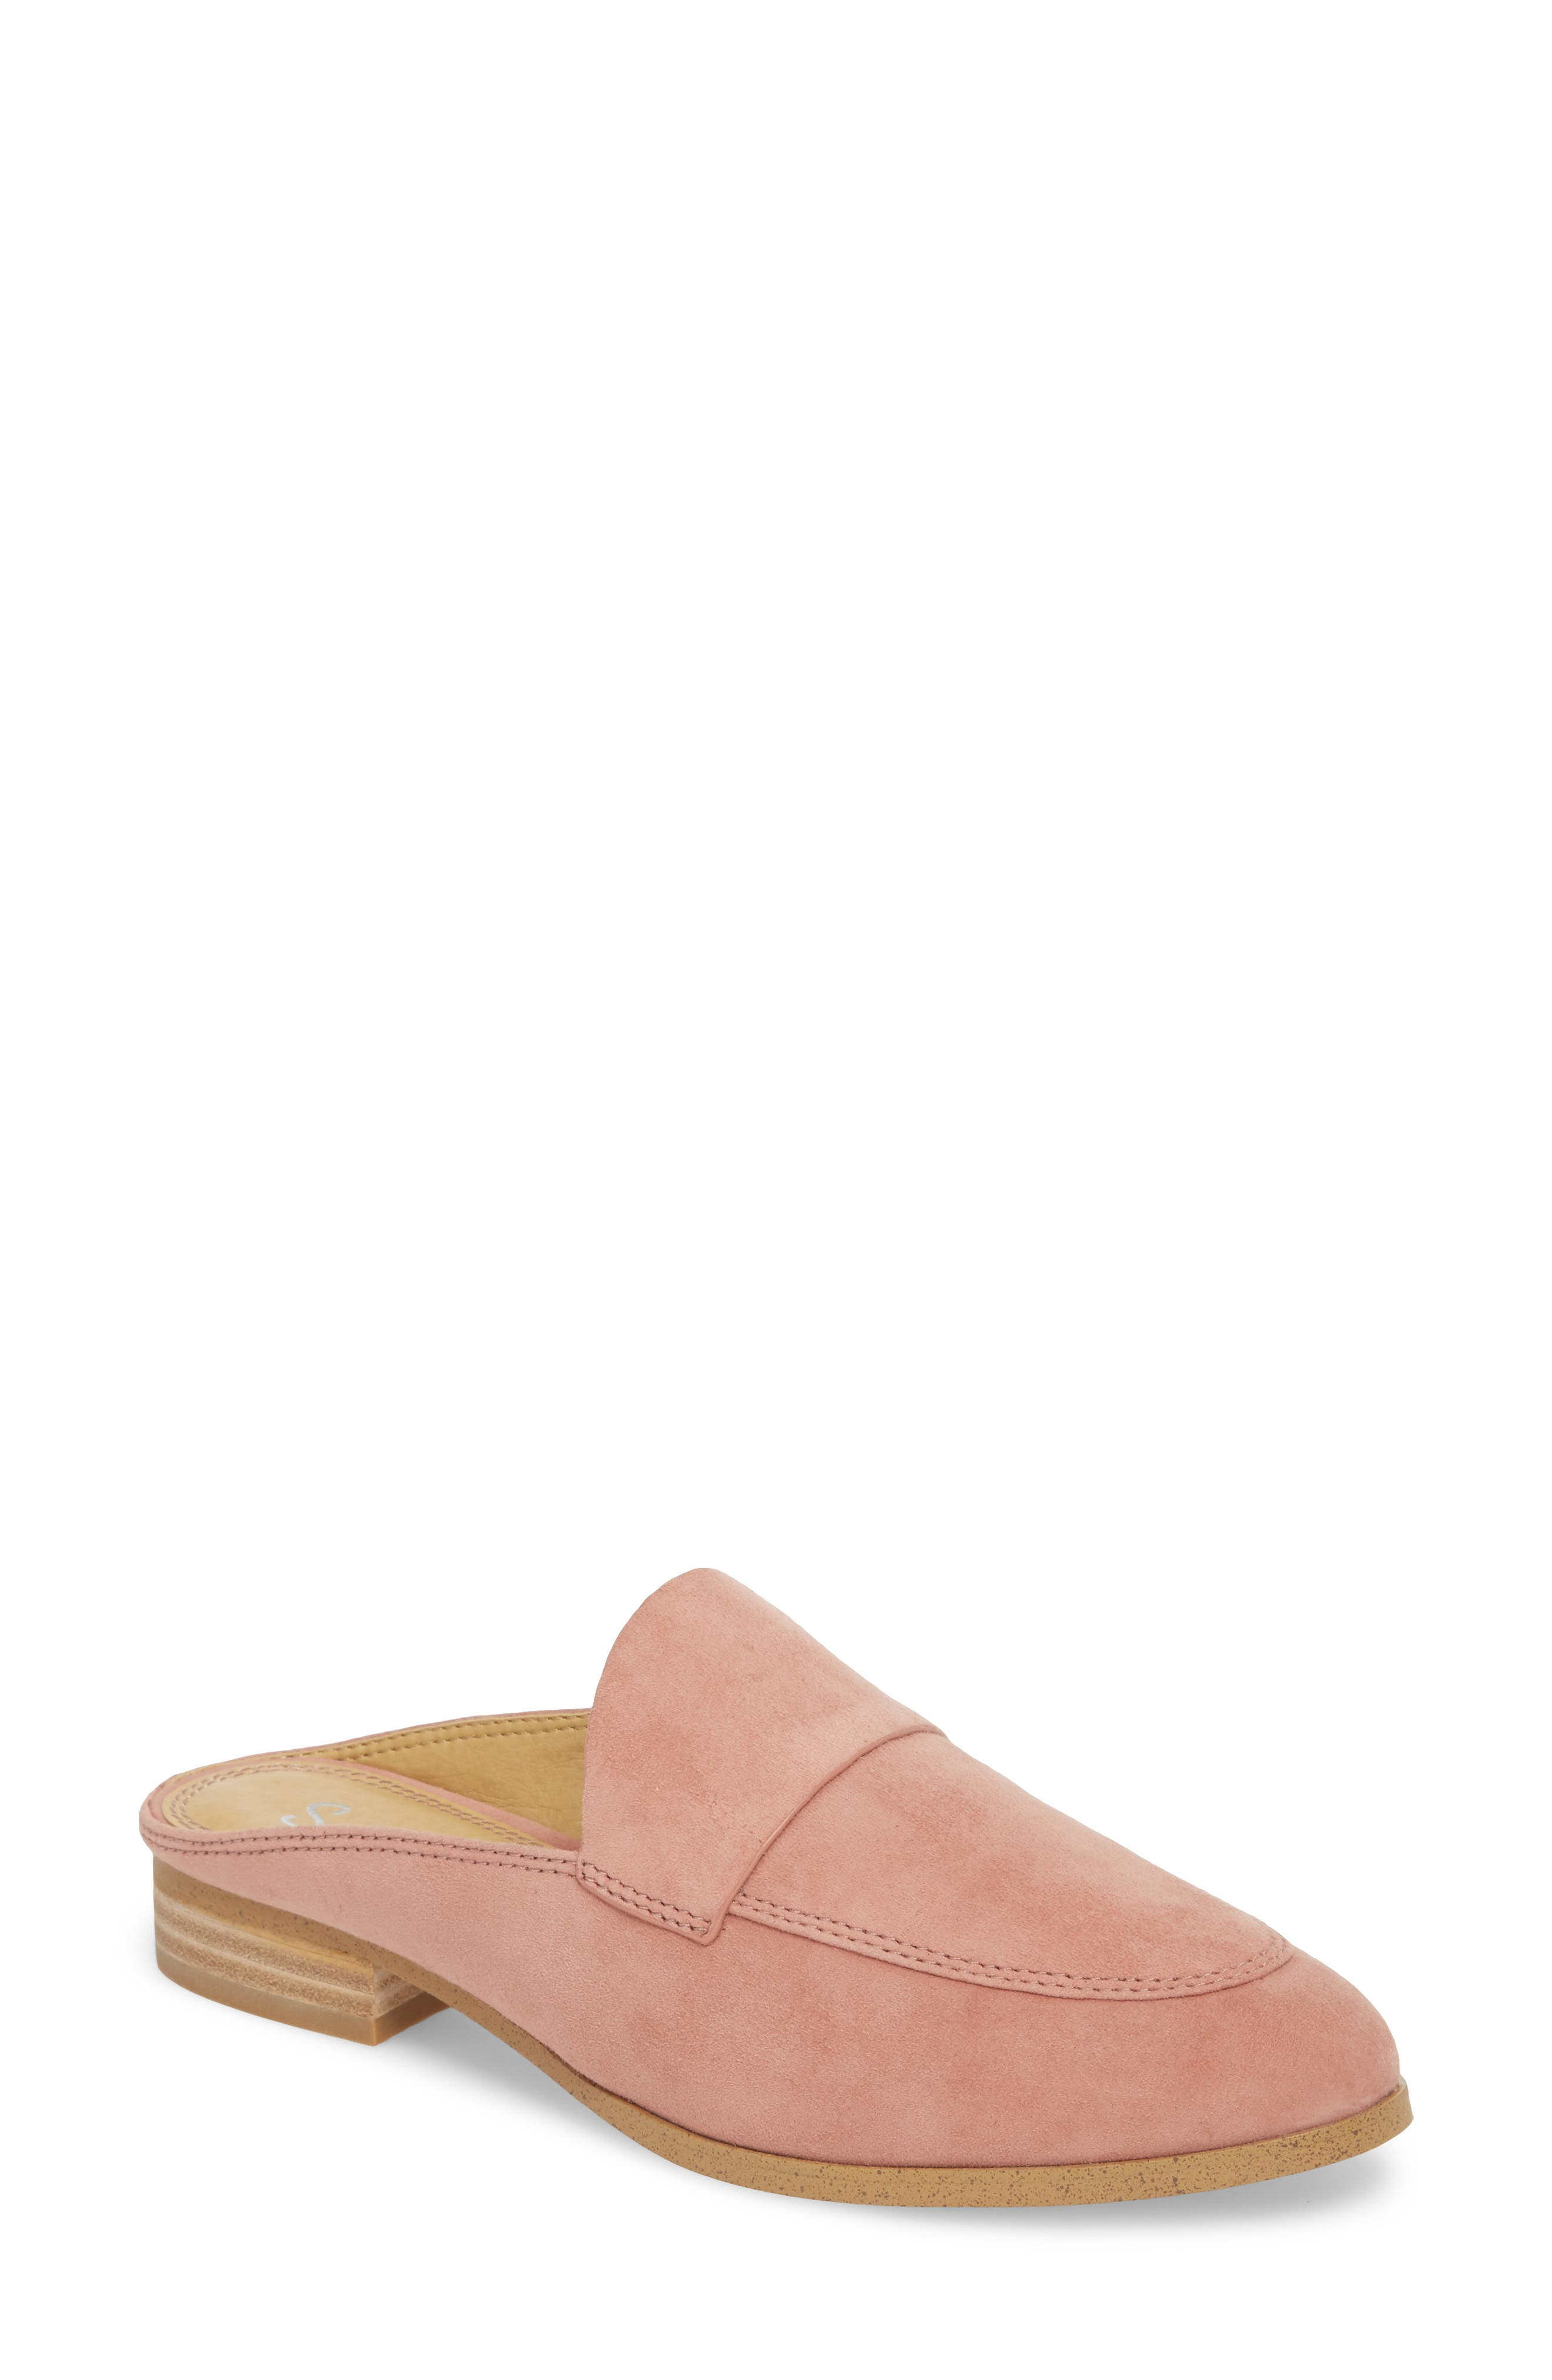 Nima Loafer Mule,                         Main,                         color, ROSE TAUPE SUEDE